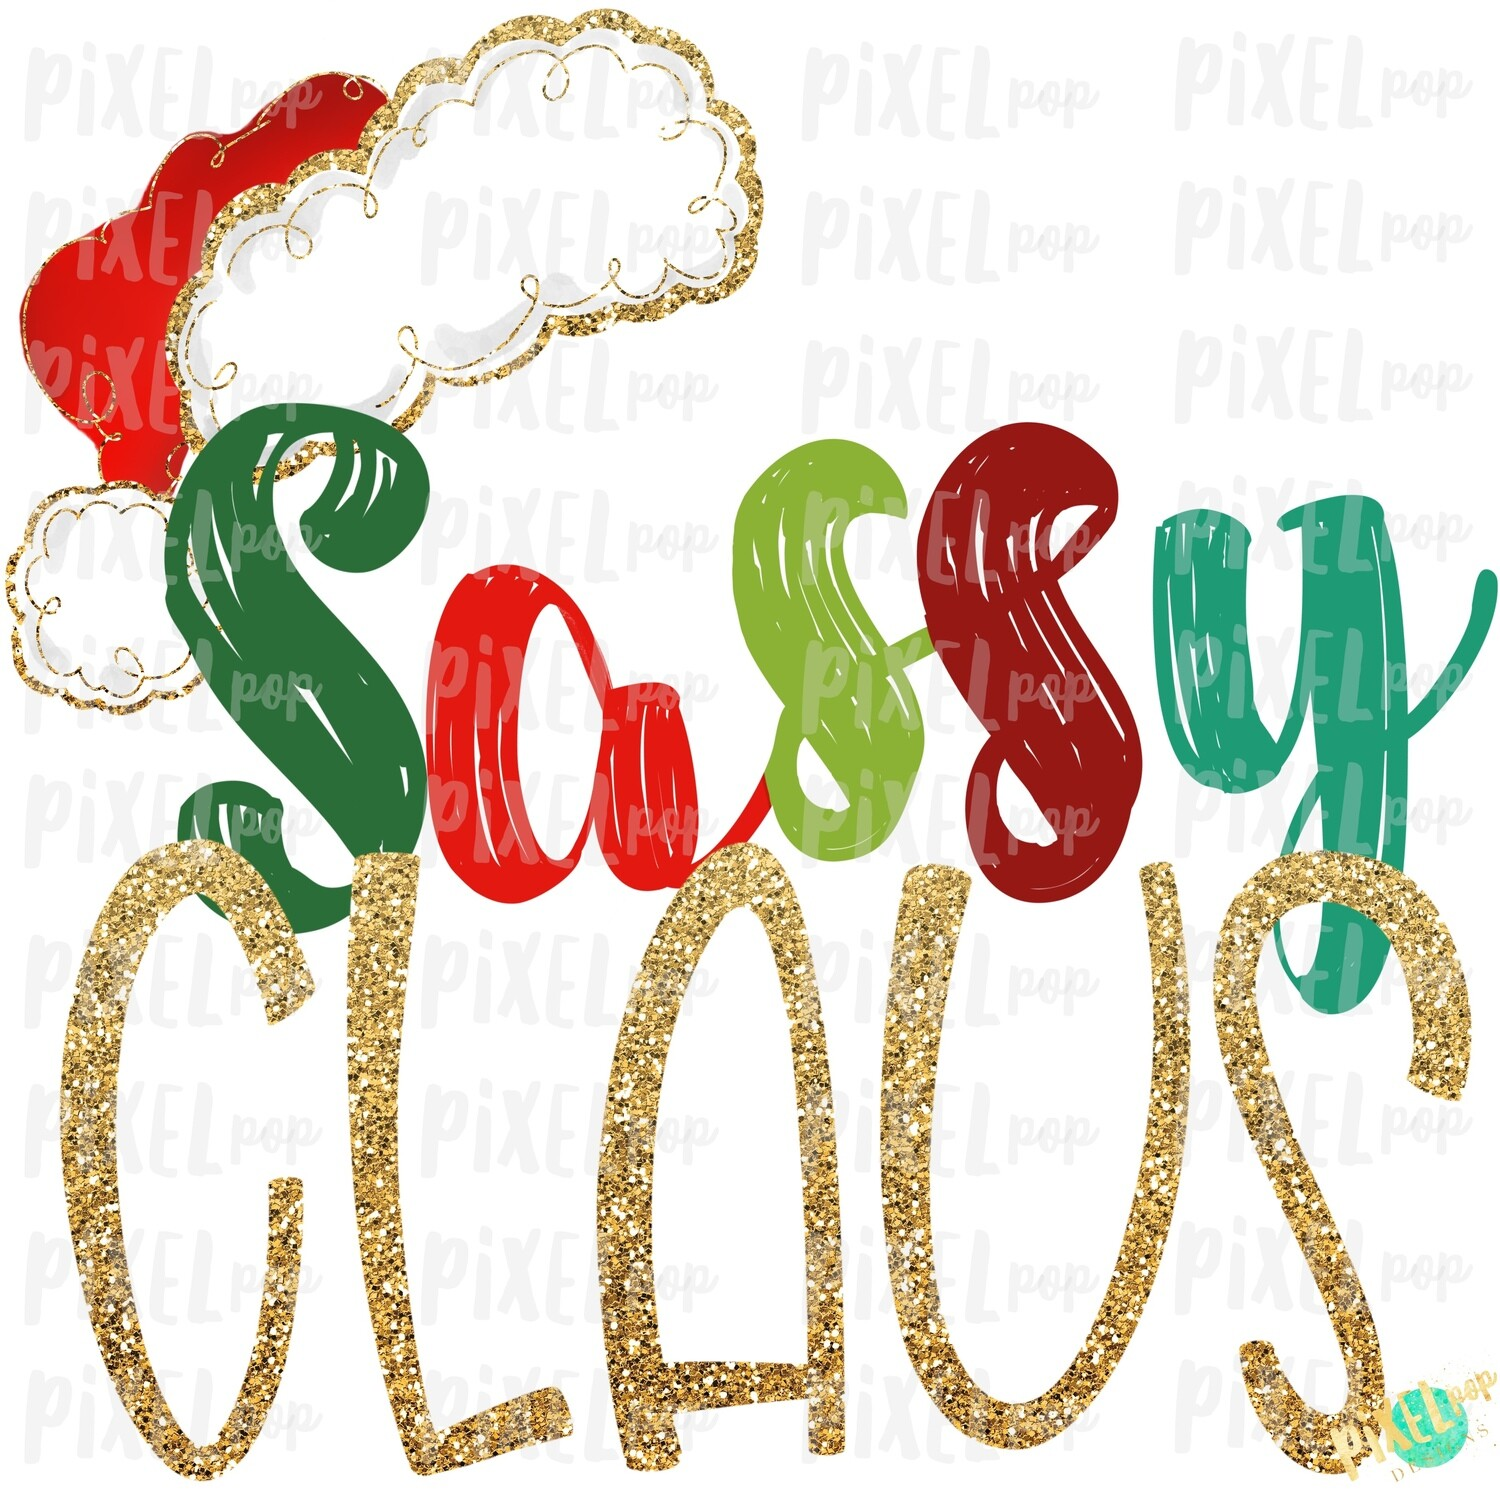 Sassy Claus Santa Hat Digital Watercolor Sublimation PNG Art | Drawn Design | Sublimation PNG | Digital Download | Printable Artwork | Art